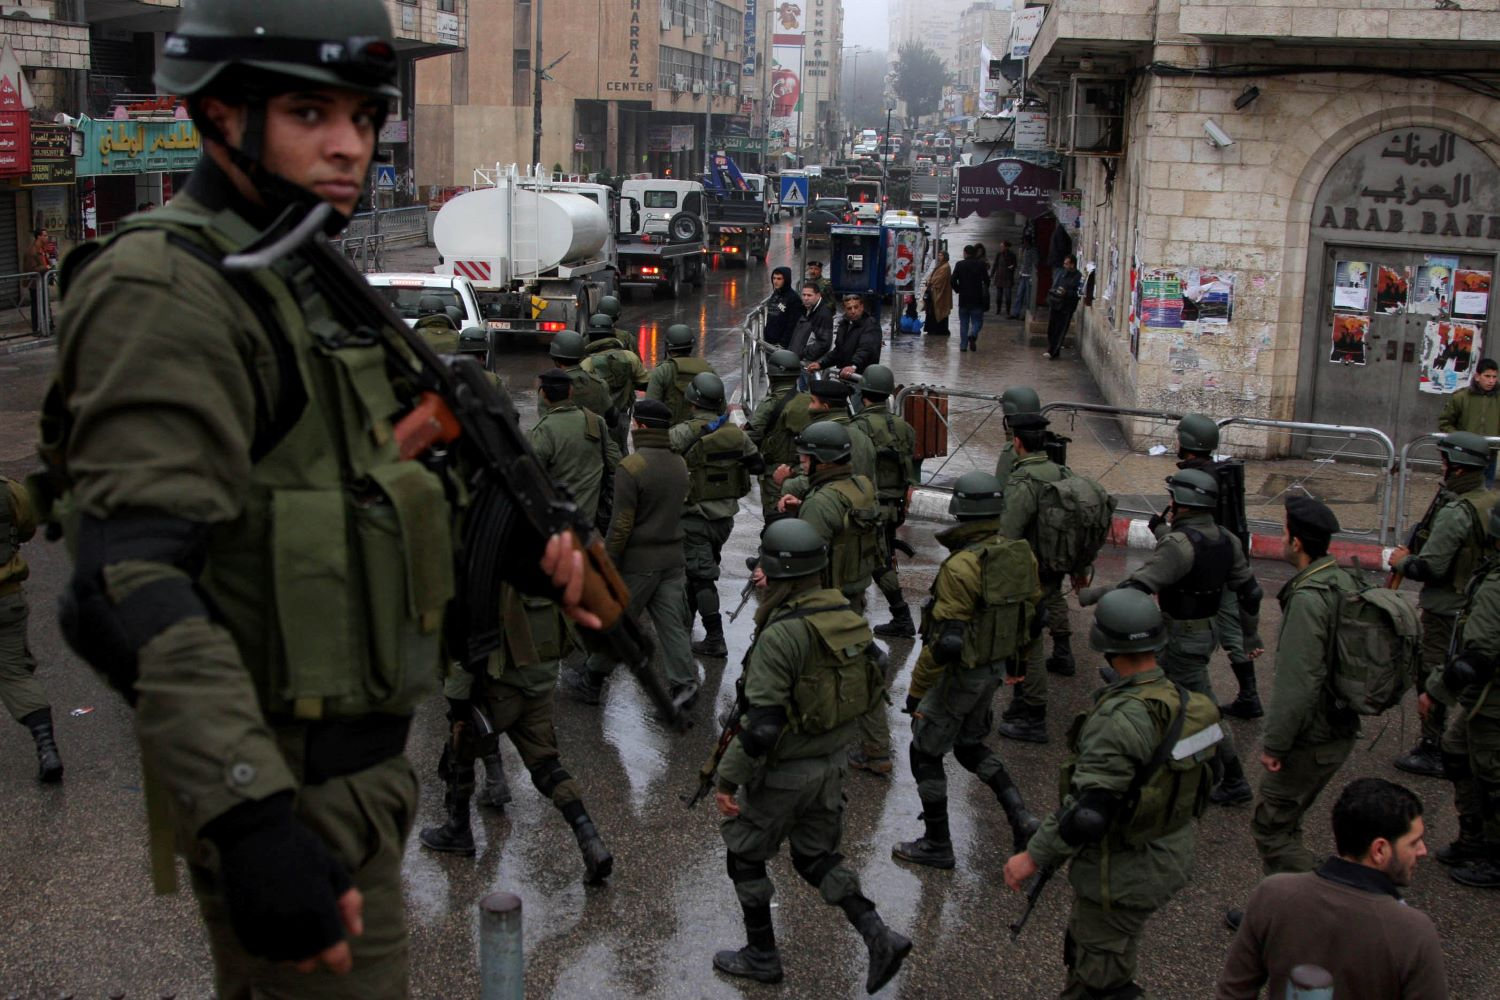 Members of the Palestinian security forces march through the West Bank city of Ramallah as part of a training session. Dec. 18, 2009. (Issam Rimawi/Flash90)